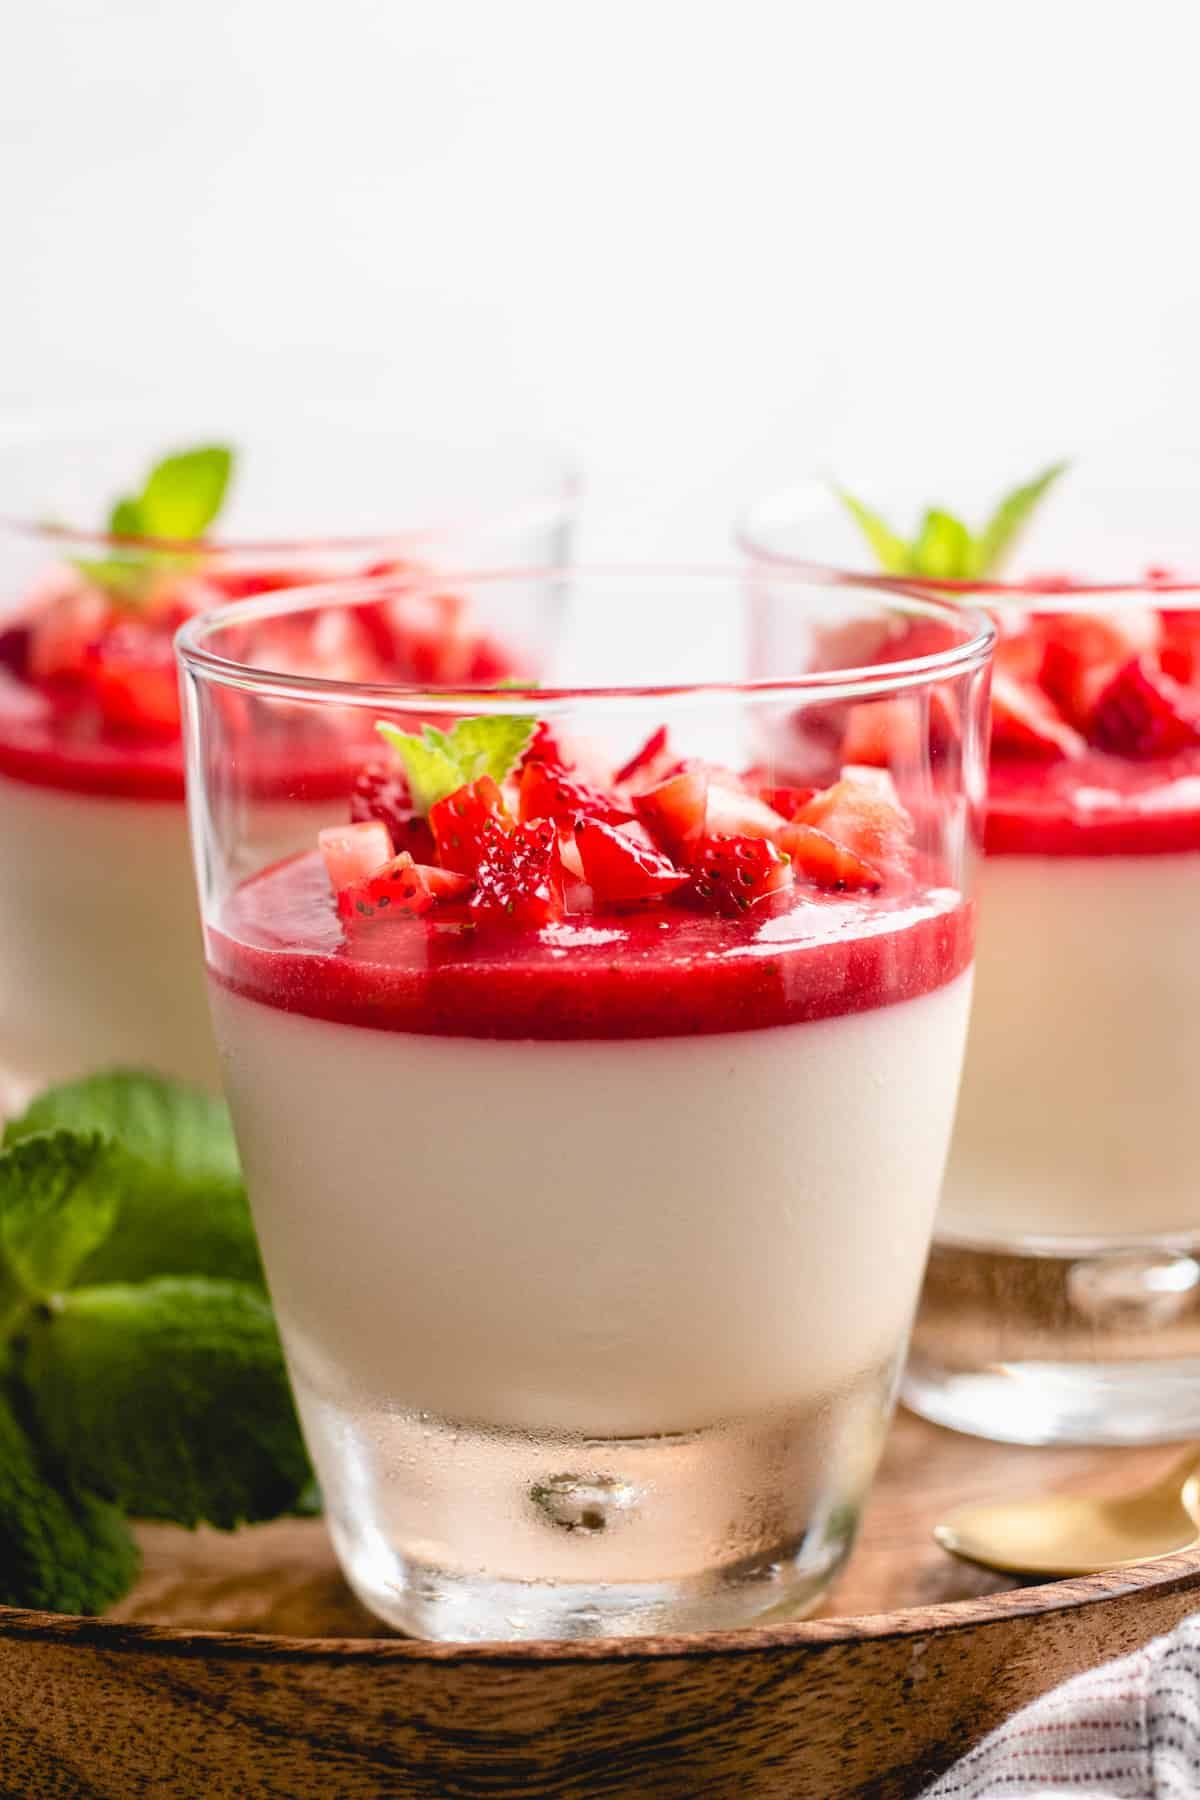 3 glasses with Panna Cotta topped with strawberry sauce on a wooden tray.